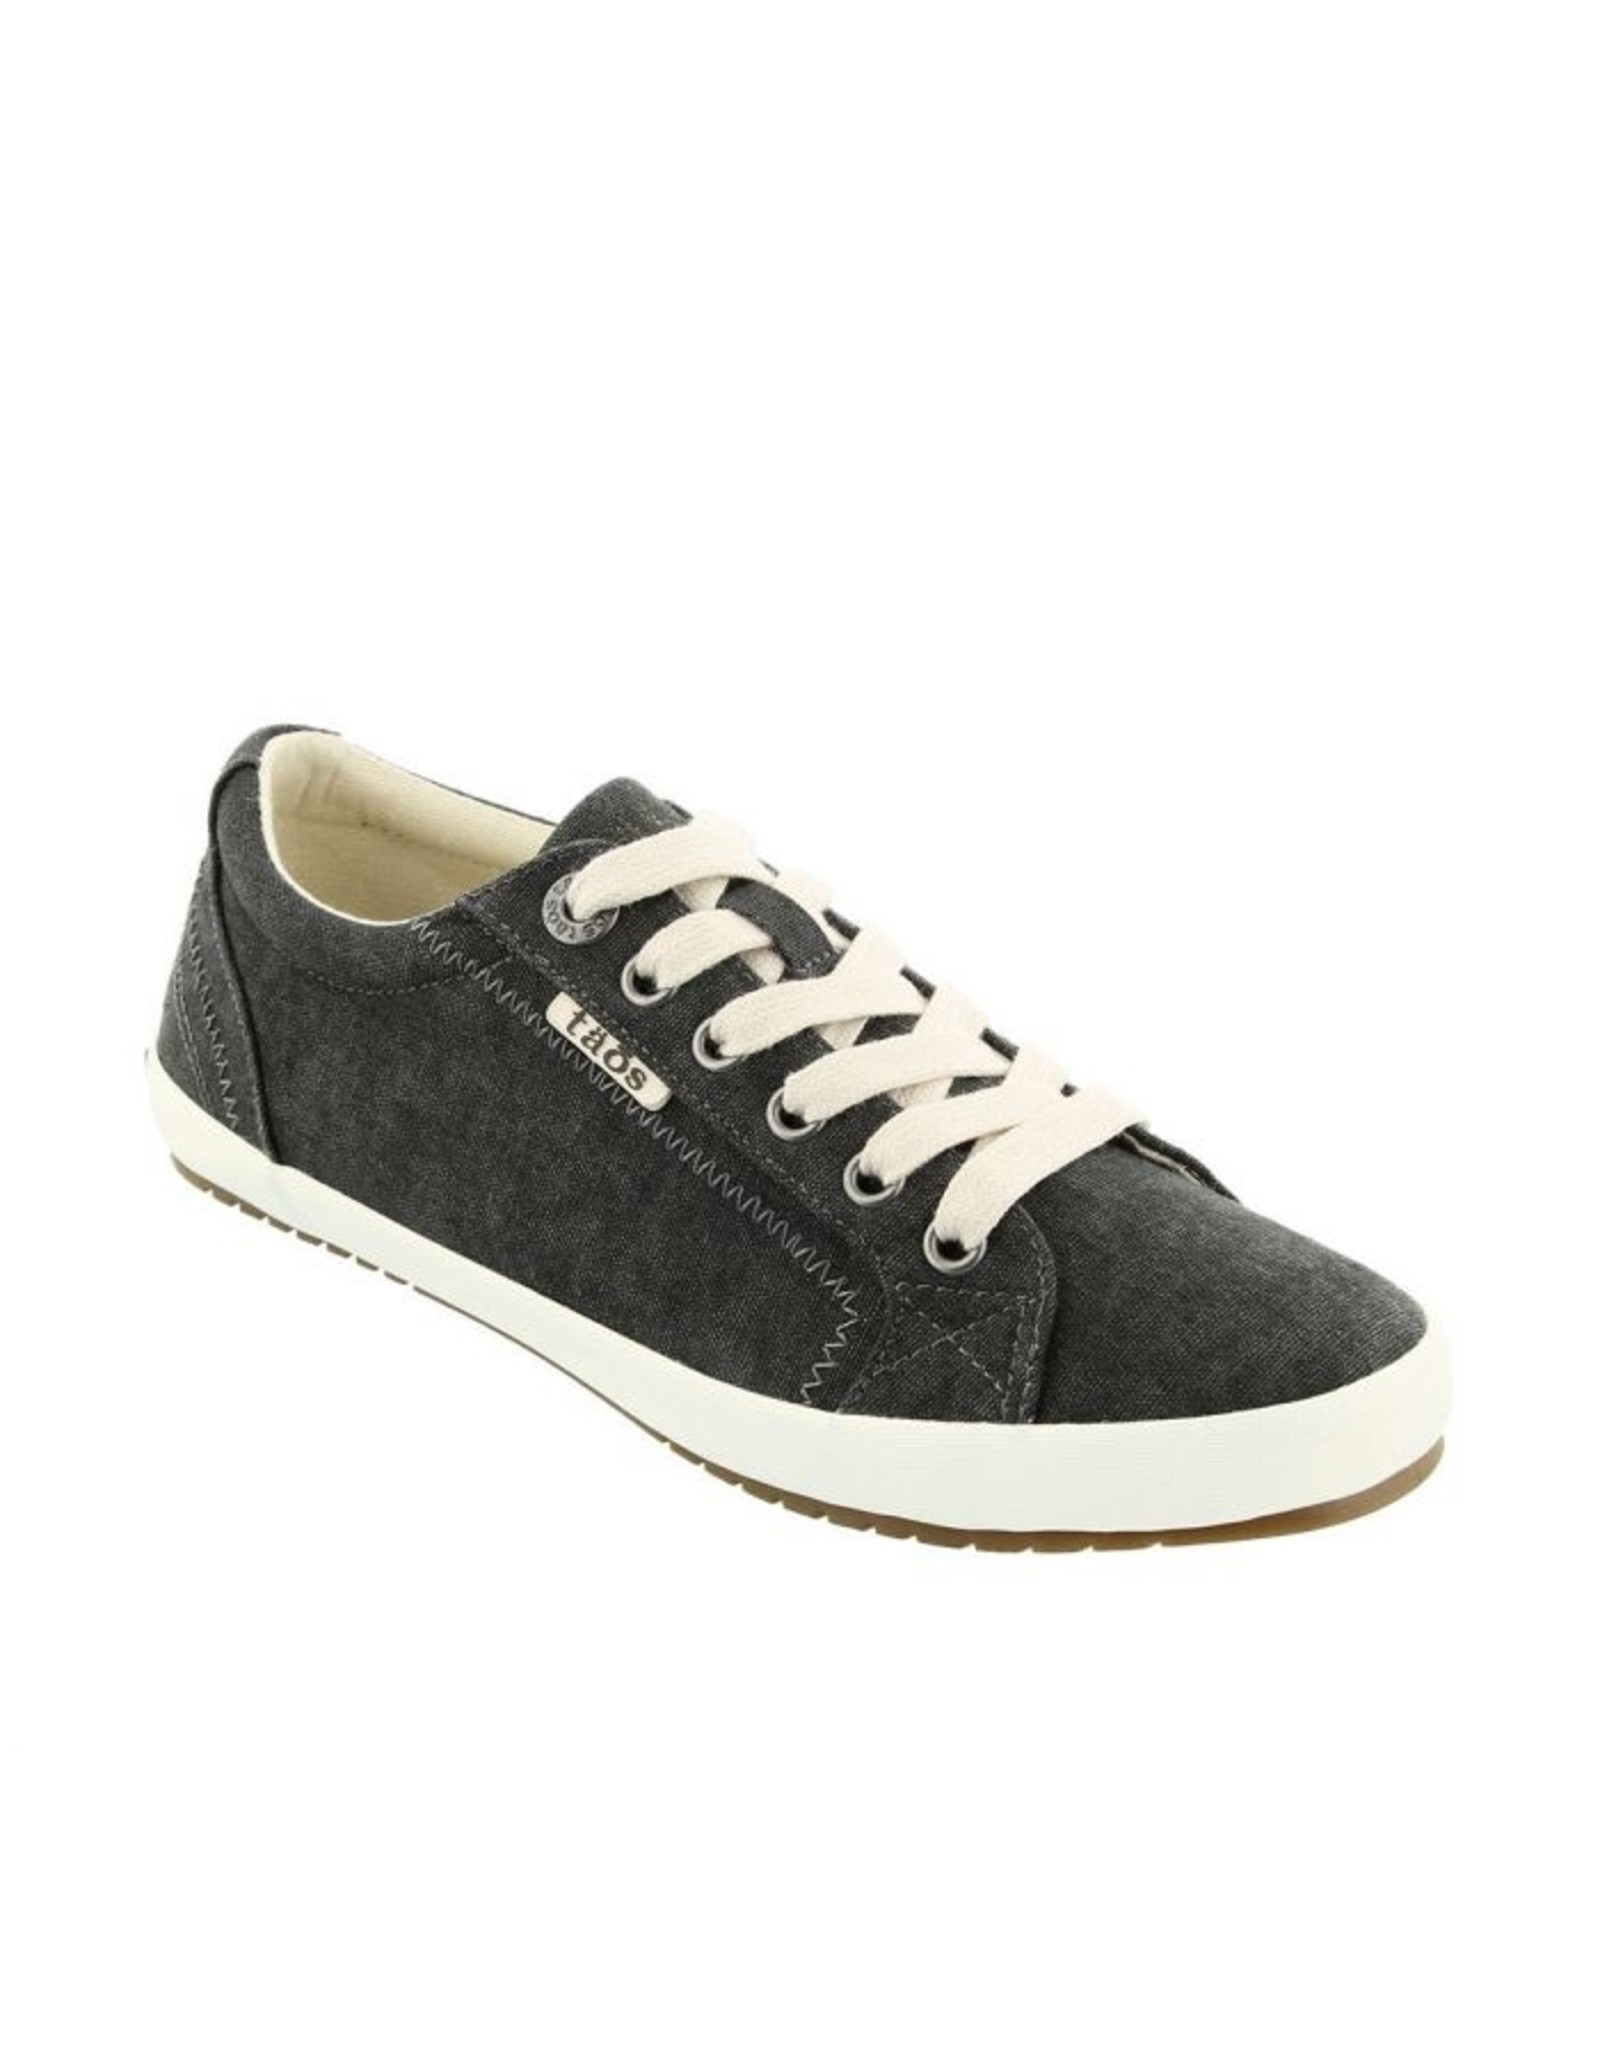 TAOS WOMEN'S STAR-CHARCOAL WASH CANVAS